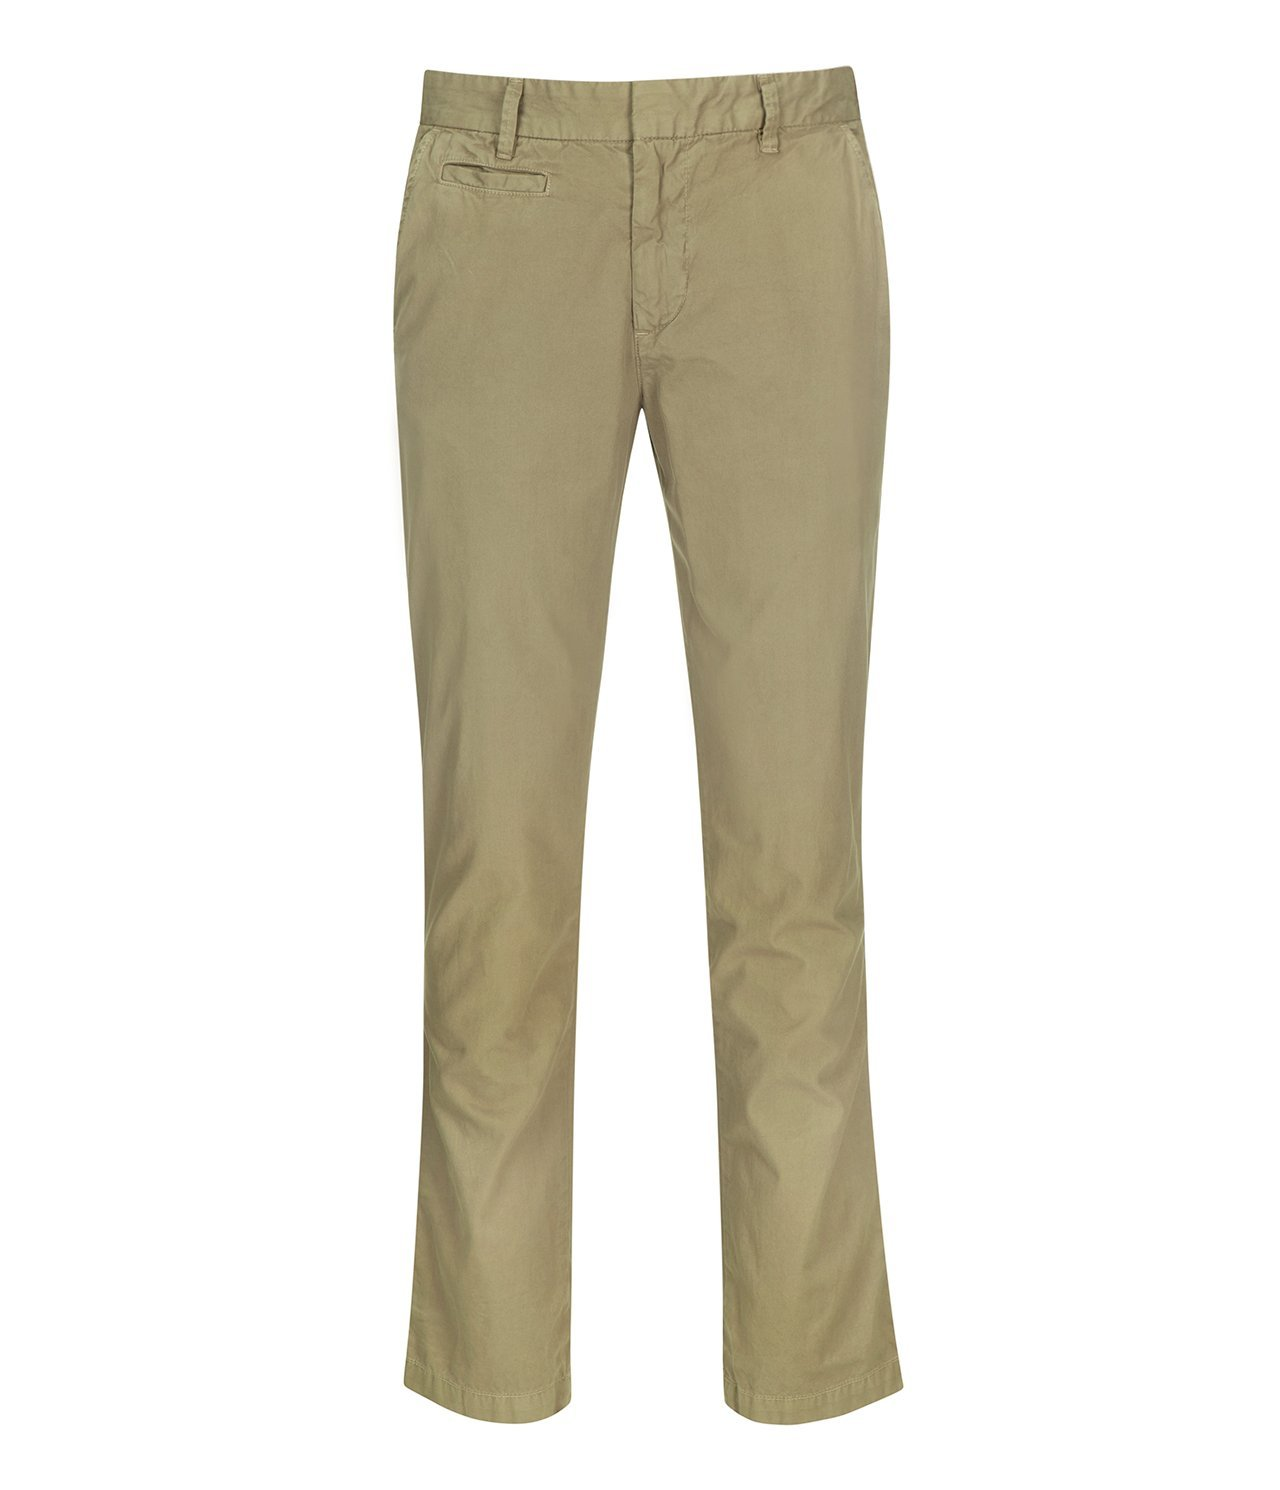 Save Khaki Men's Slim Trouser SK933-US Dust Khaki SZ 30